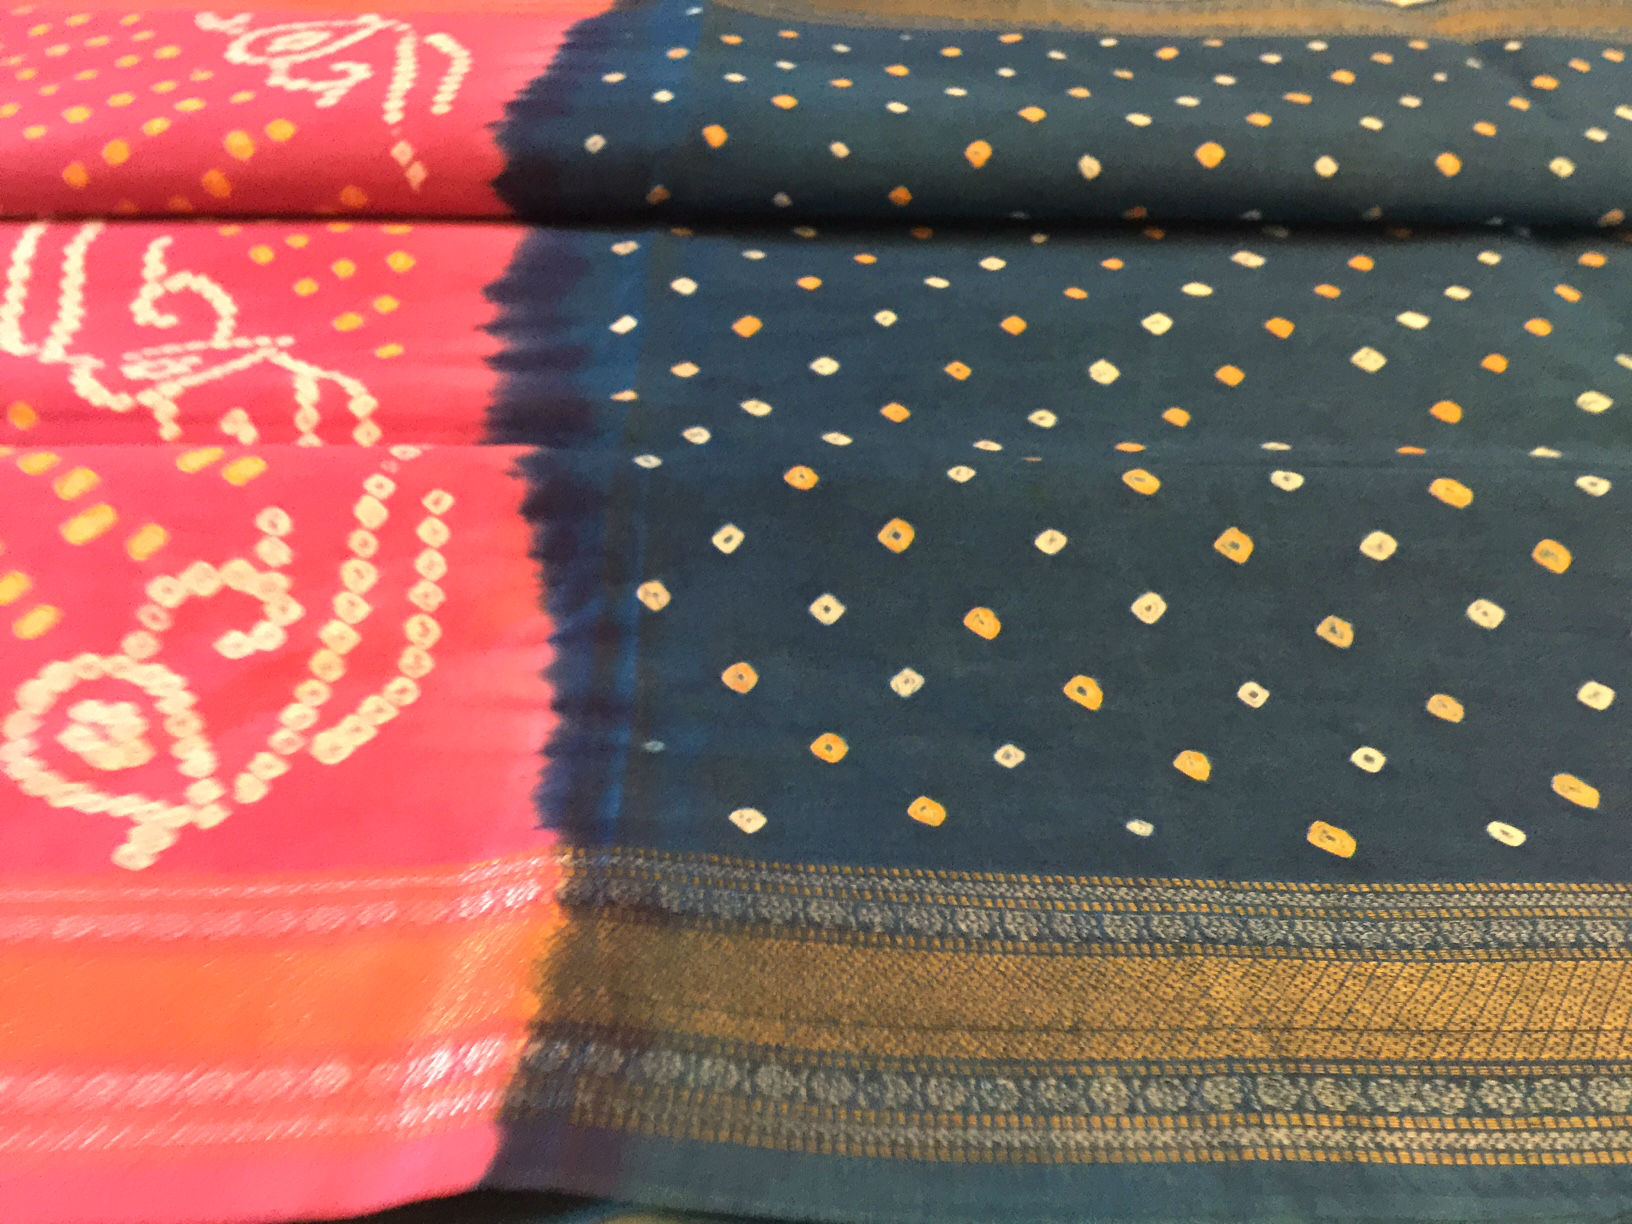 Sale! 40% Off! Cotton Bandhani Teal Pink with Zari Border